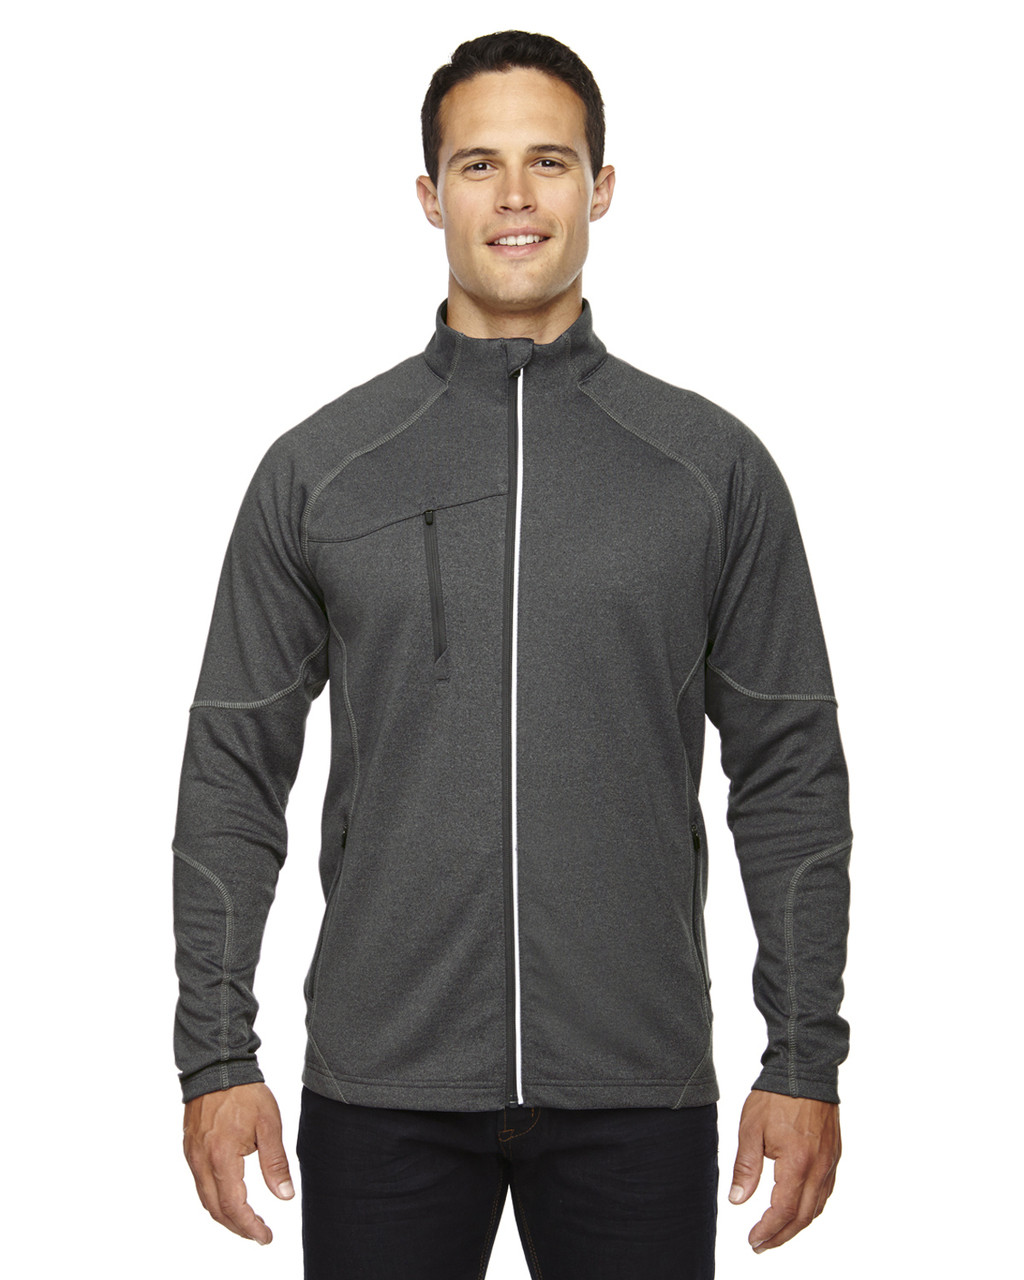 Carbn Heather 88174 Ash City - North End Men's Gravity Performance Fleece Jacket | Blankclothing.ca